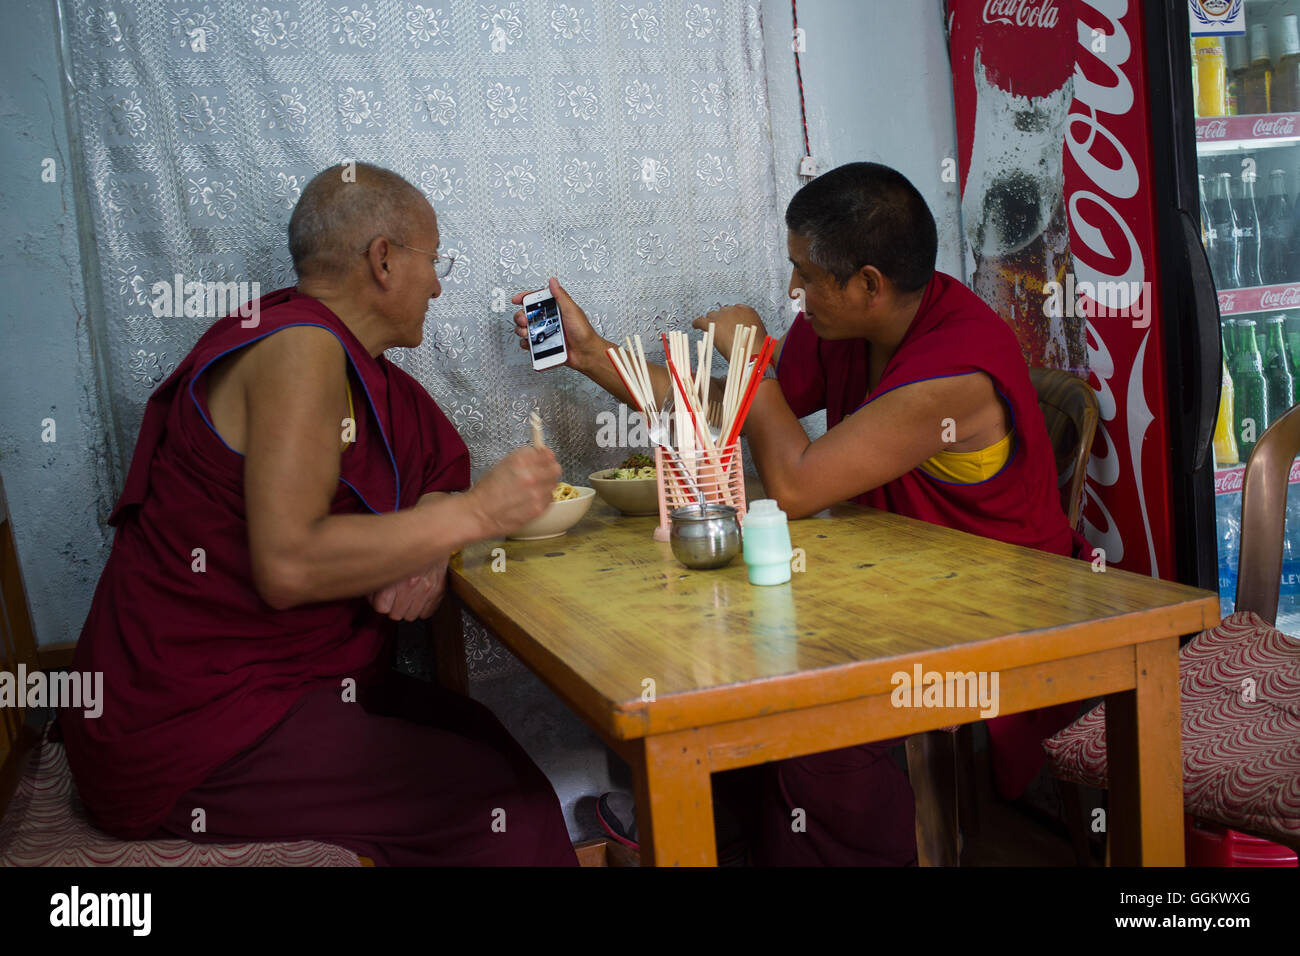 Two Buddhist monks watching a car model on the screen of a phone in a restaurant of  Dharamsala,  India. © - Stock Image